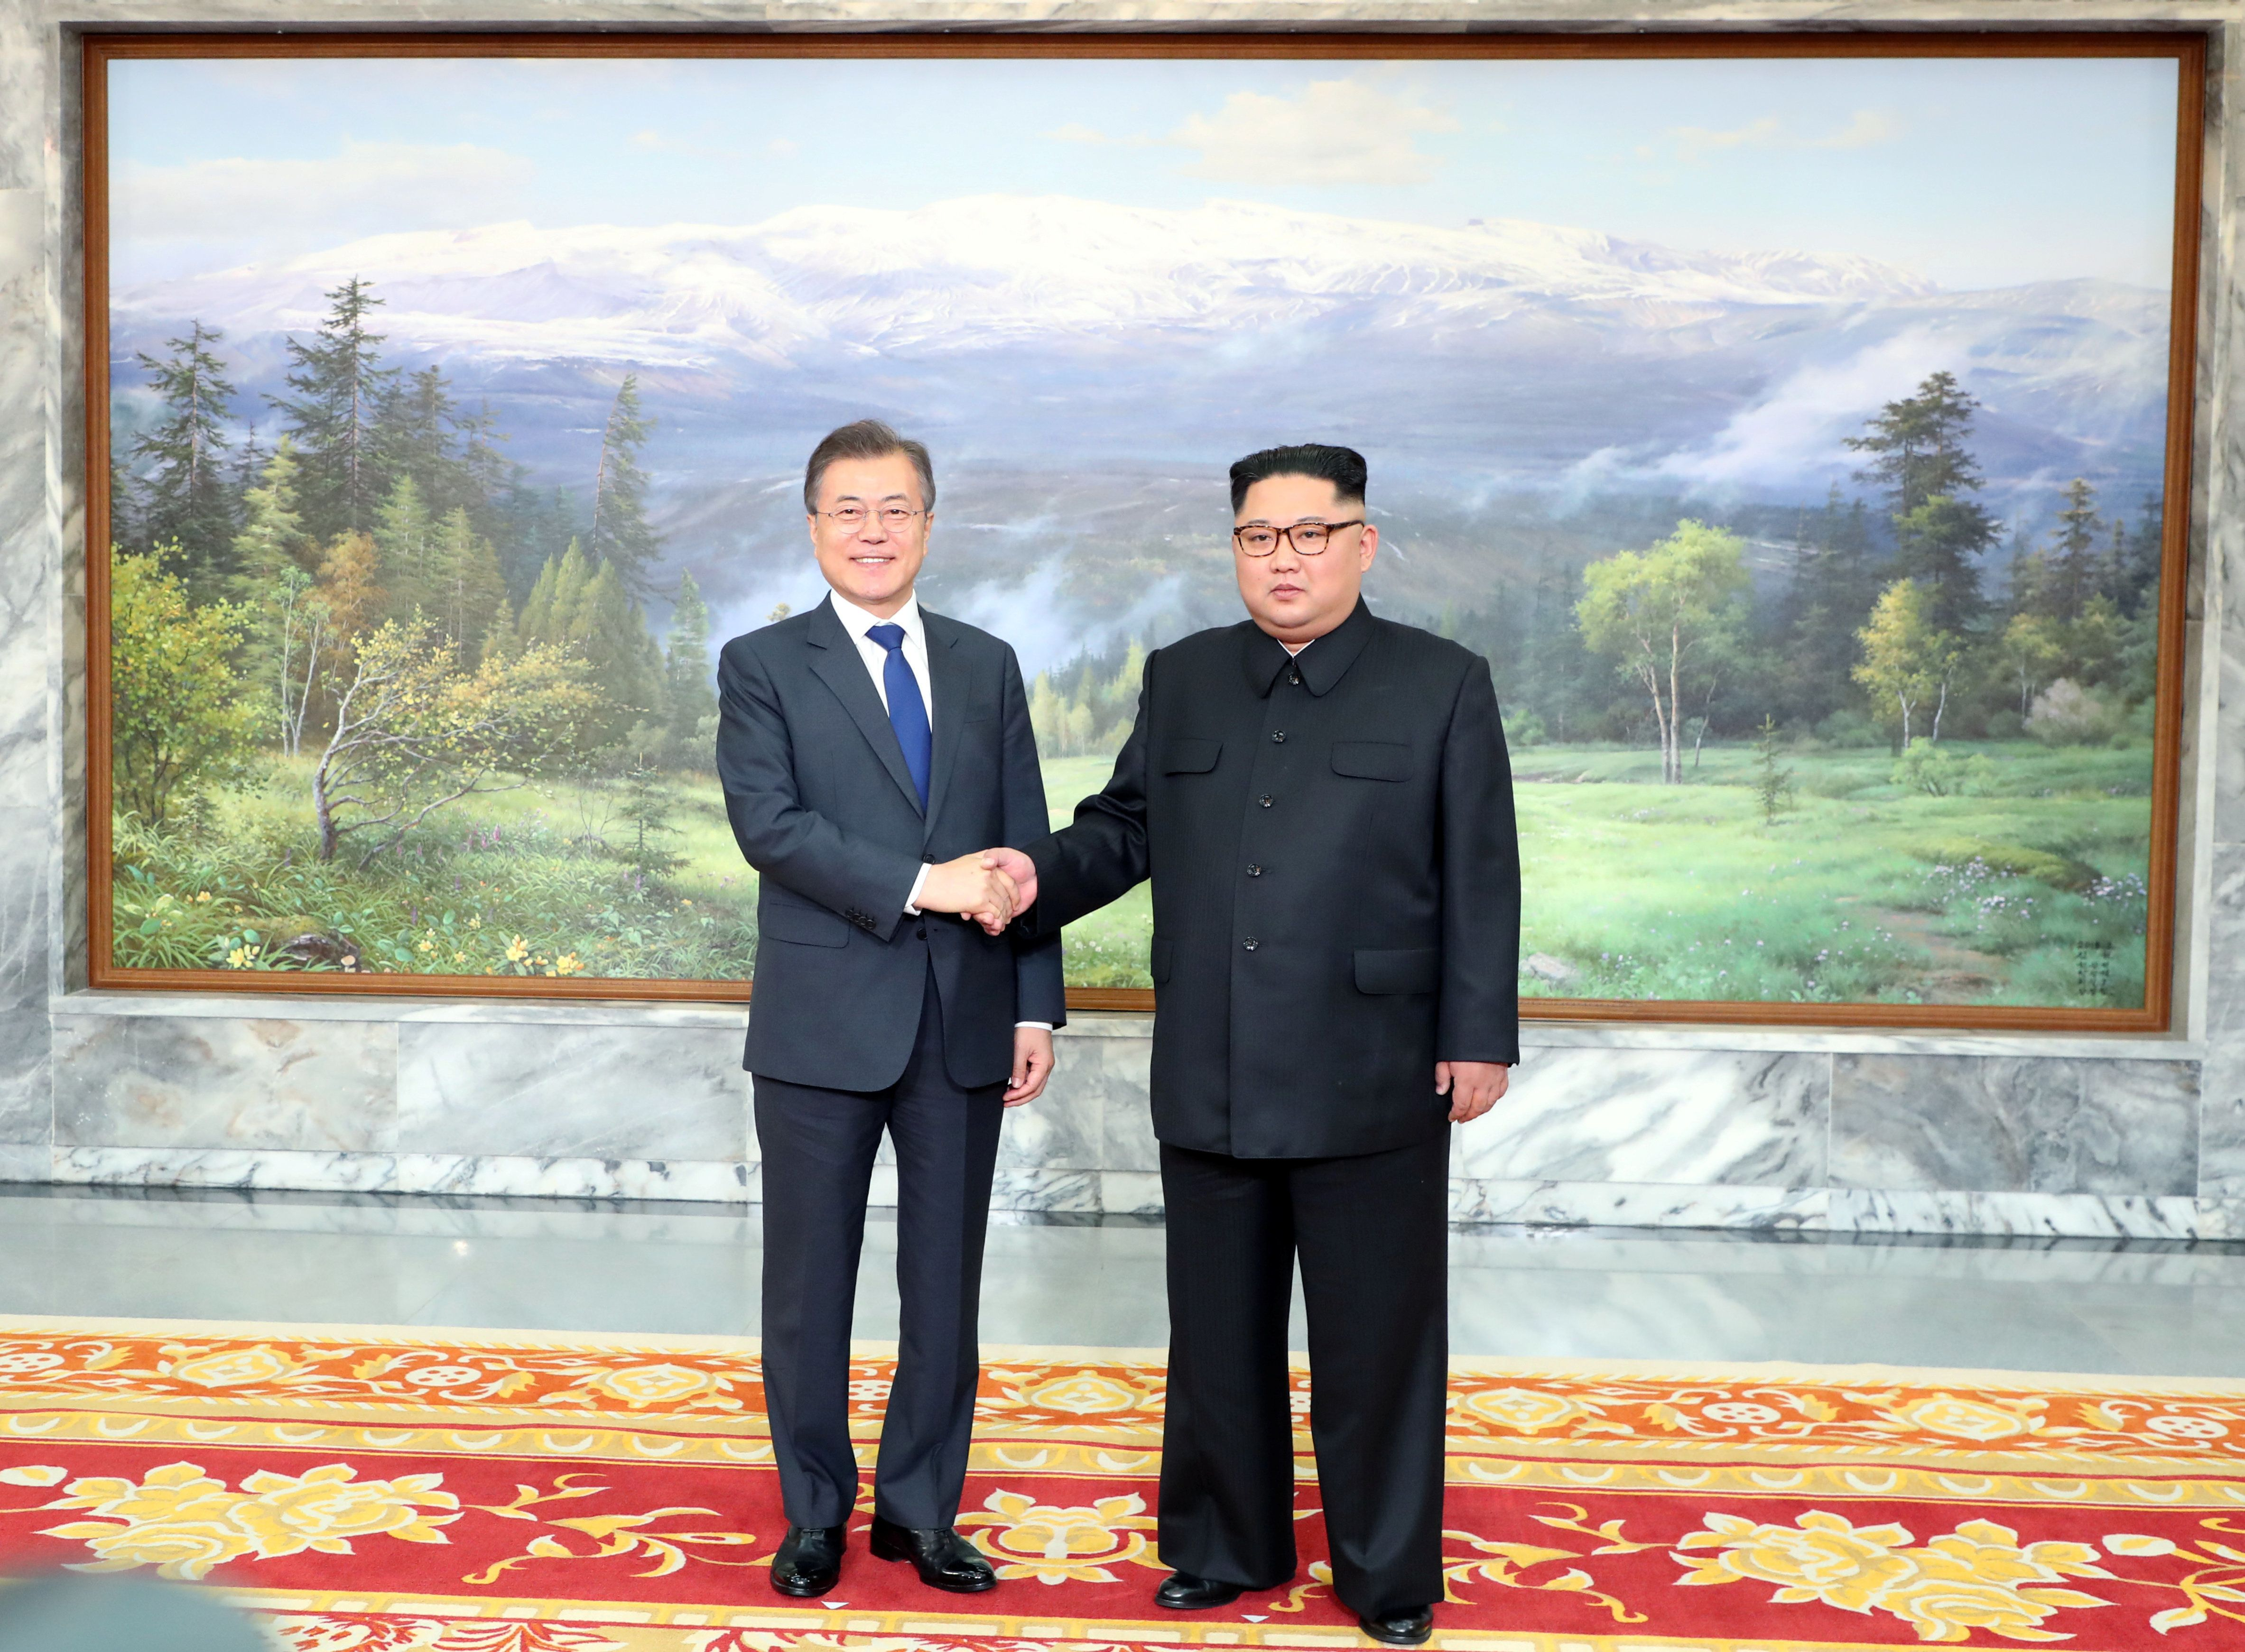 South Korean President Moon Jae-in shakes hands with North Korean leader Kim Jong Un during their summit at the truce village of Panmunjom, North Korea, in this handout picture provided by the Presidential Blue House on May 26, 2018.     The Presidential Blue House /Handout via REUTERS ATTENTION EDITORS - THIS IMAGE WAS PROVIDED BY A THIRD PARTY